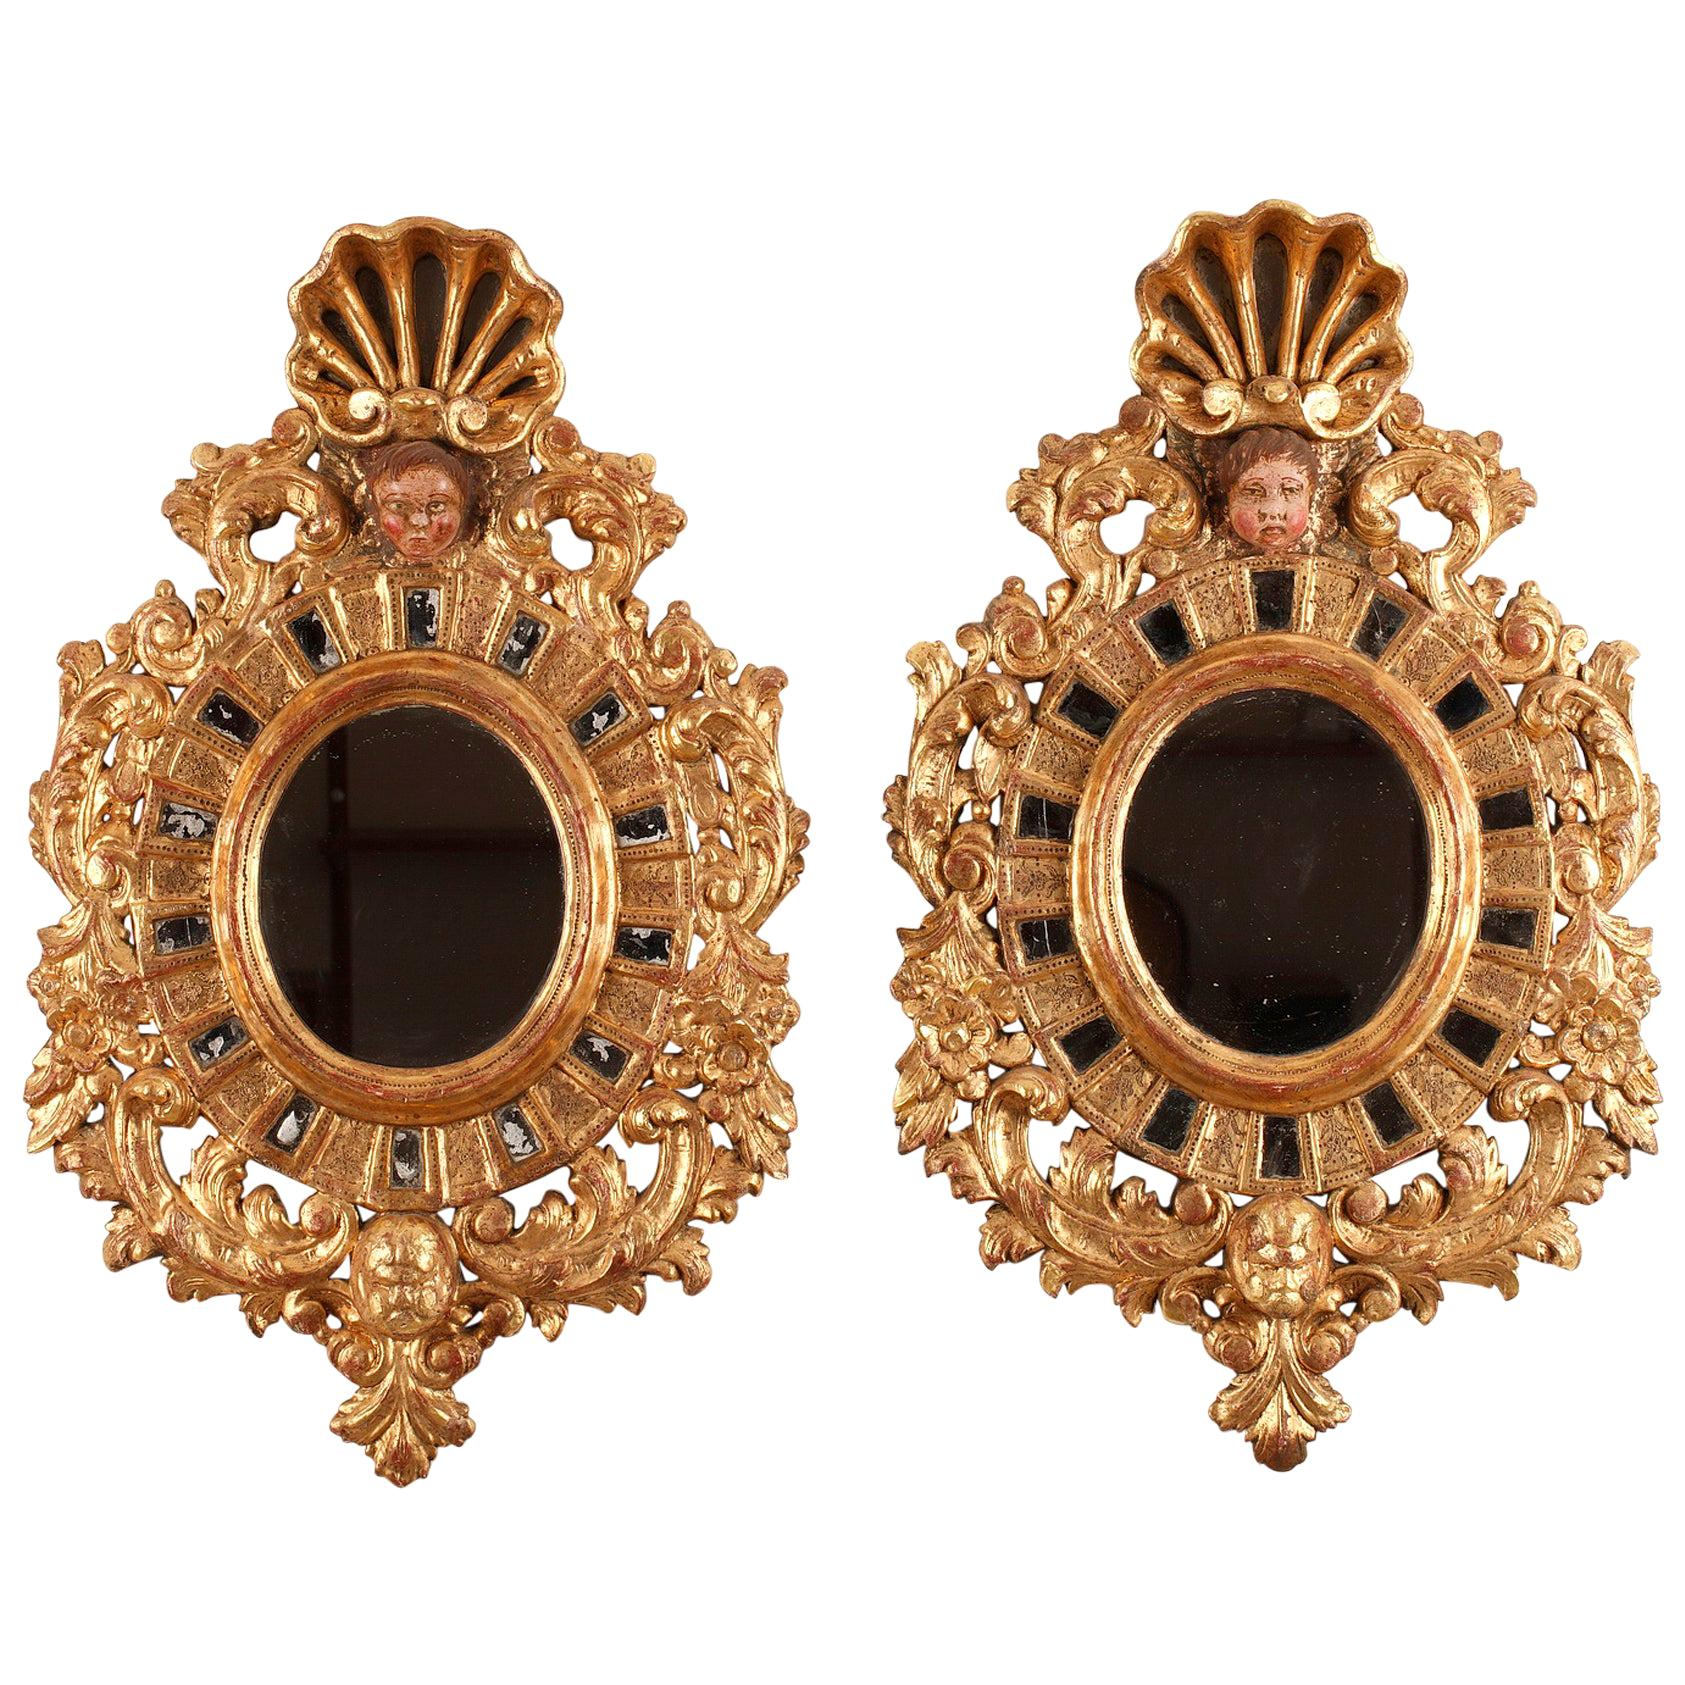 19th Century Pair of Giltwood Mirrors in Venetian Style